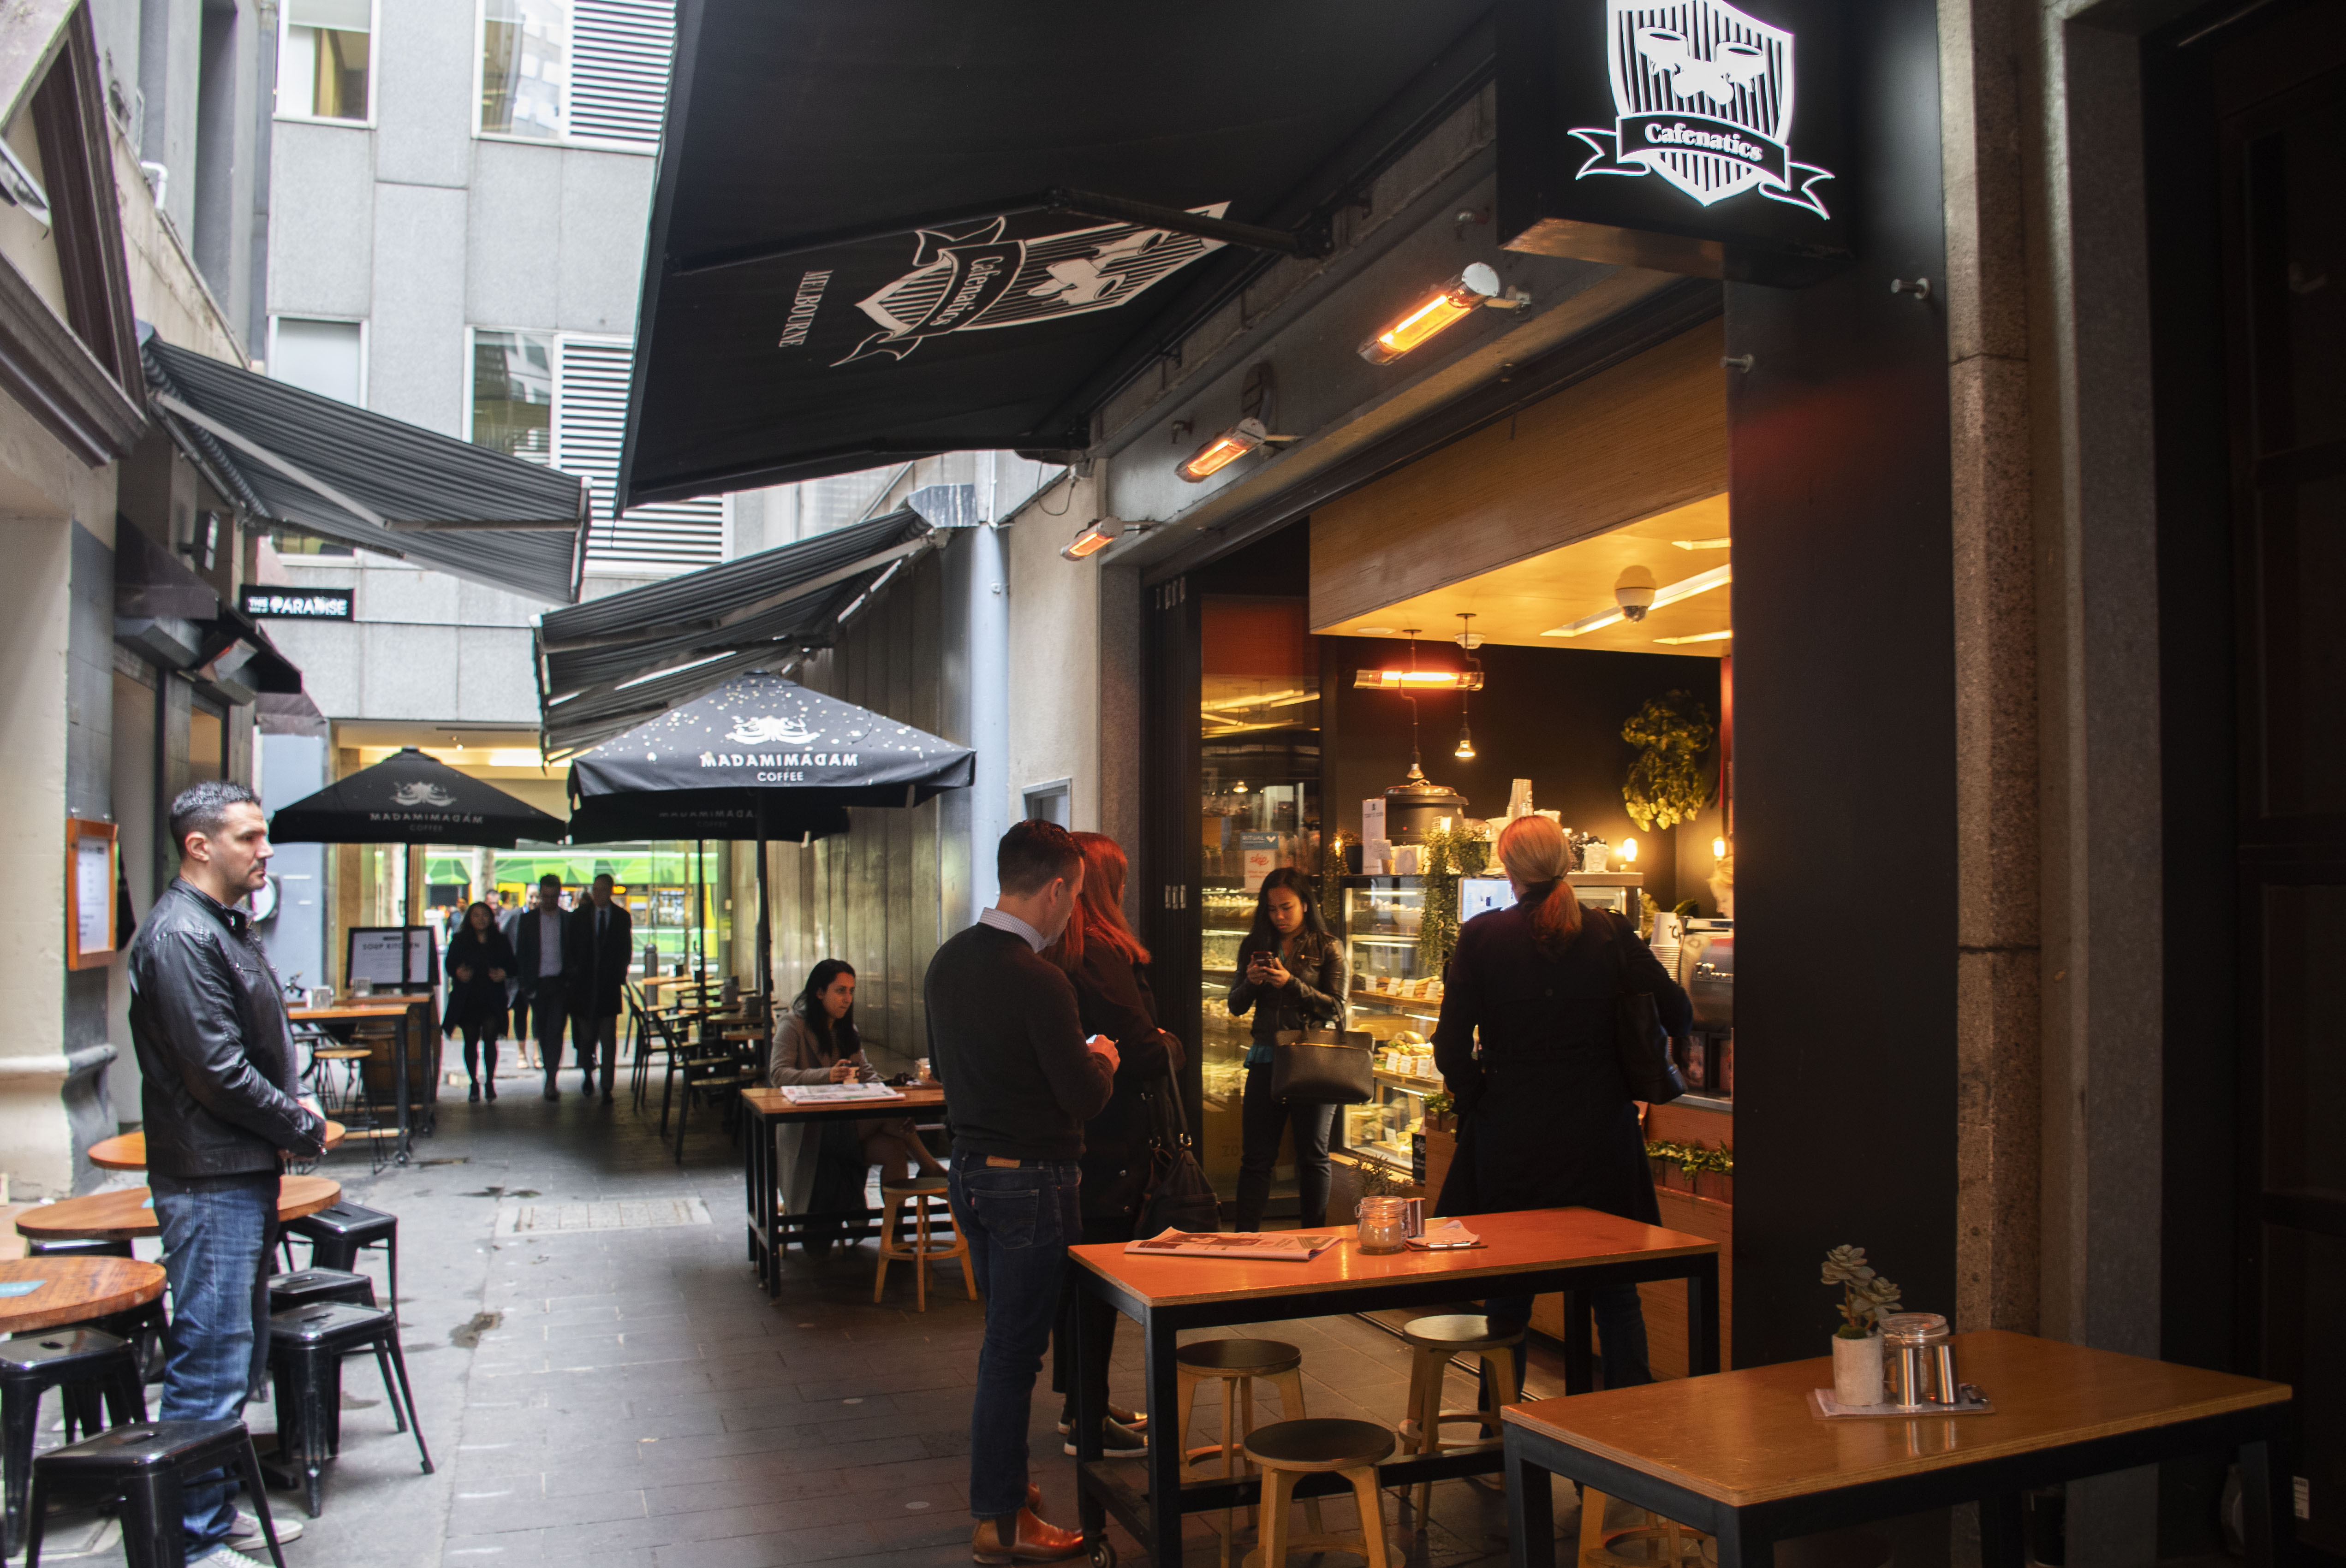 People wait to order and pick up their coffees on a Thursday morning at Cafenatics, which is tucked away in a lane off of Collins Street.